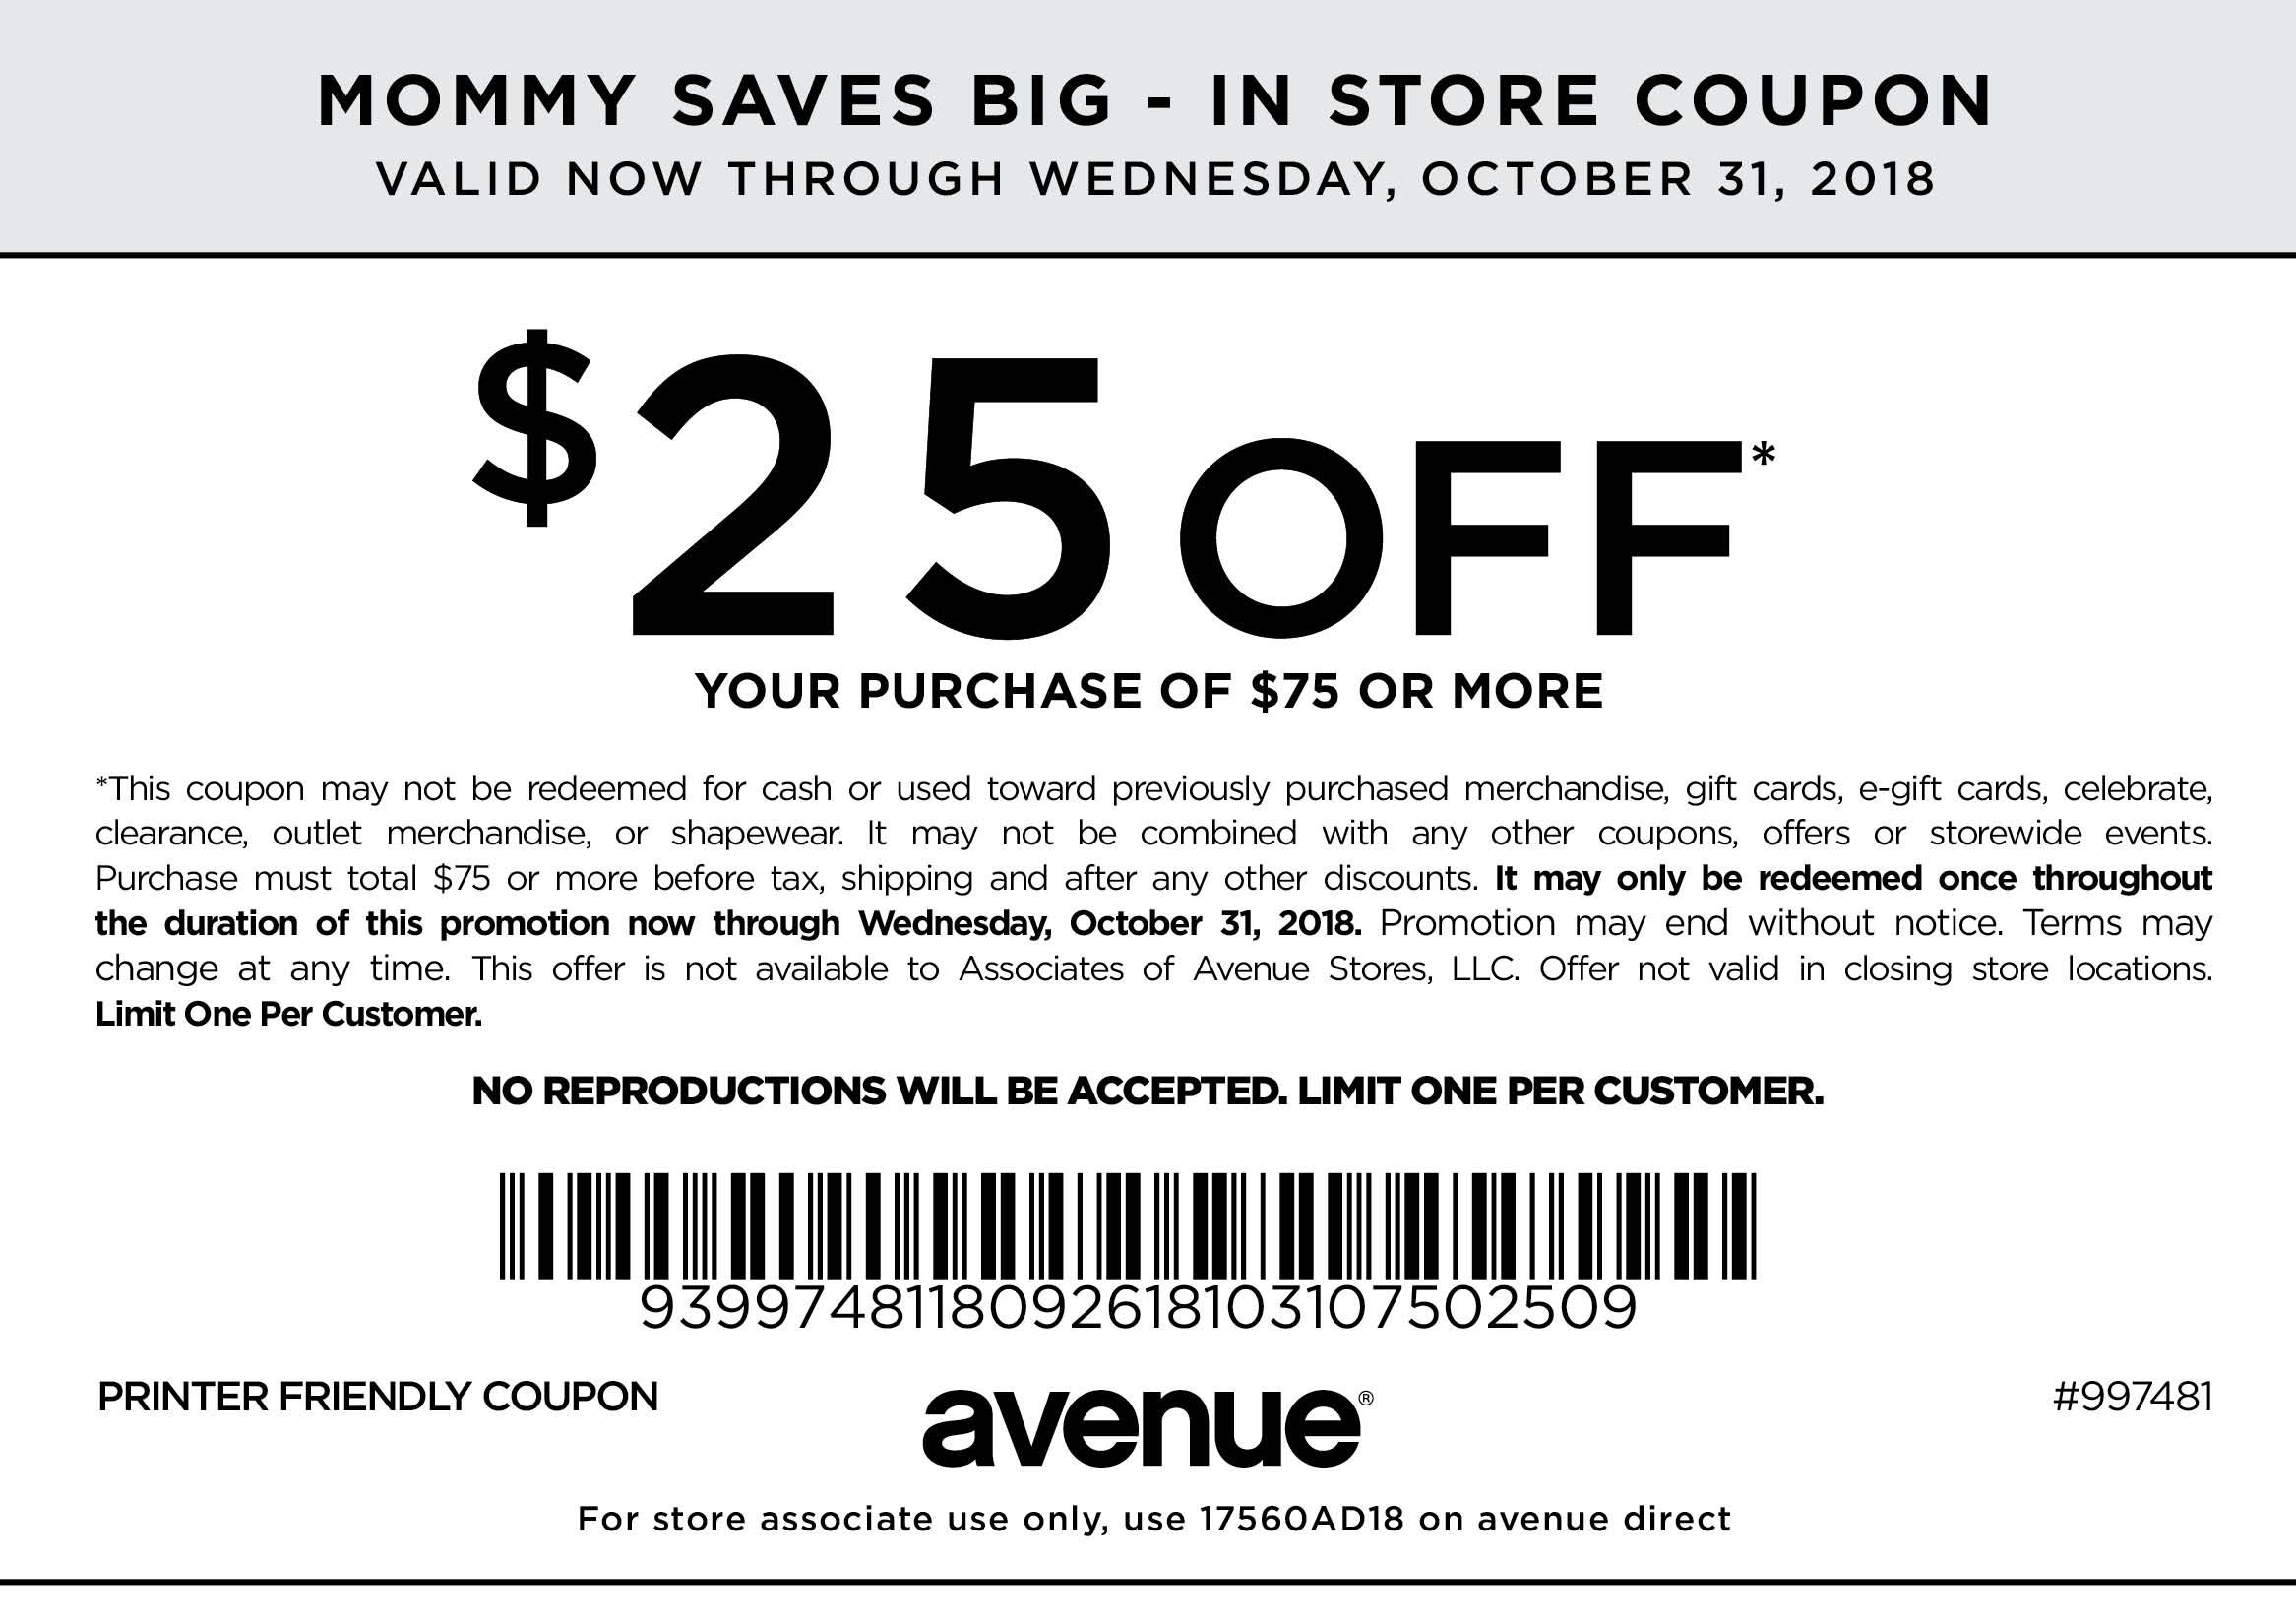 Pin By Ruth Ann Steele On Bulletin Covers Coupons Printable Coupons Print Coupons